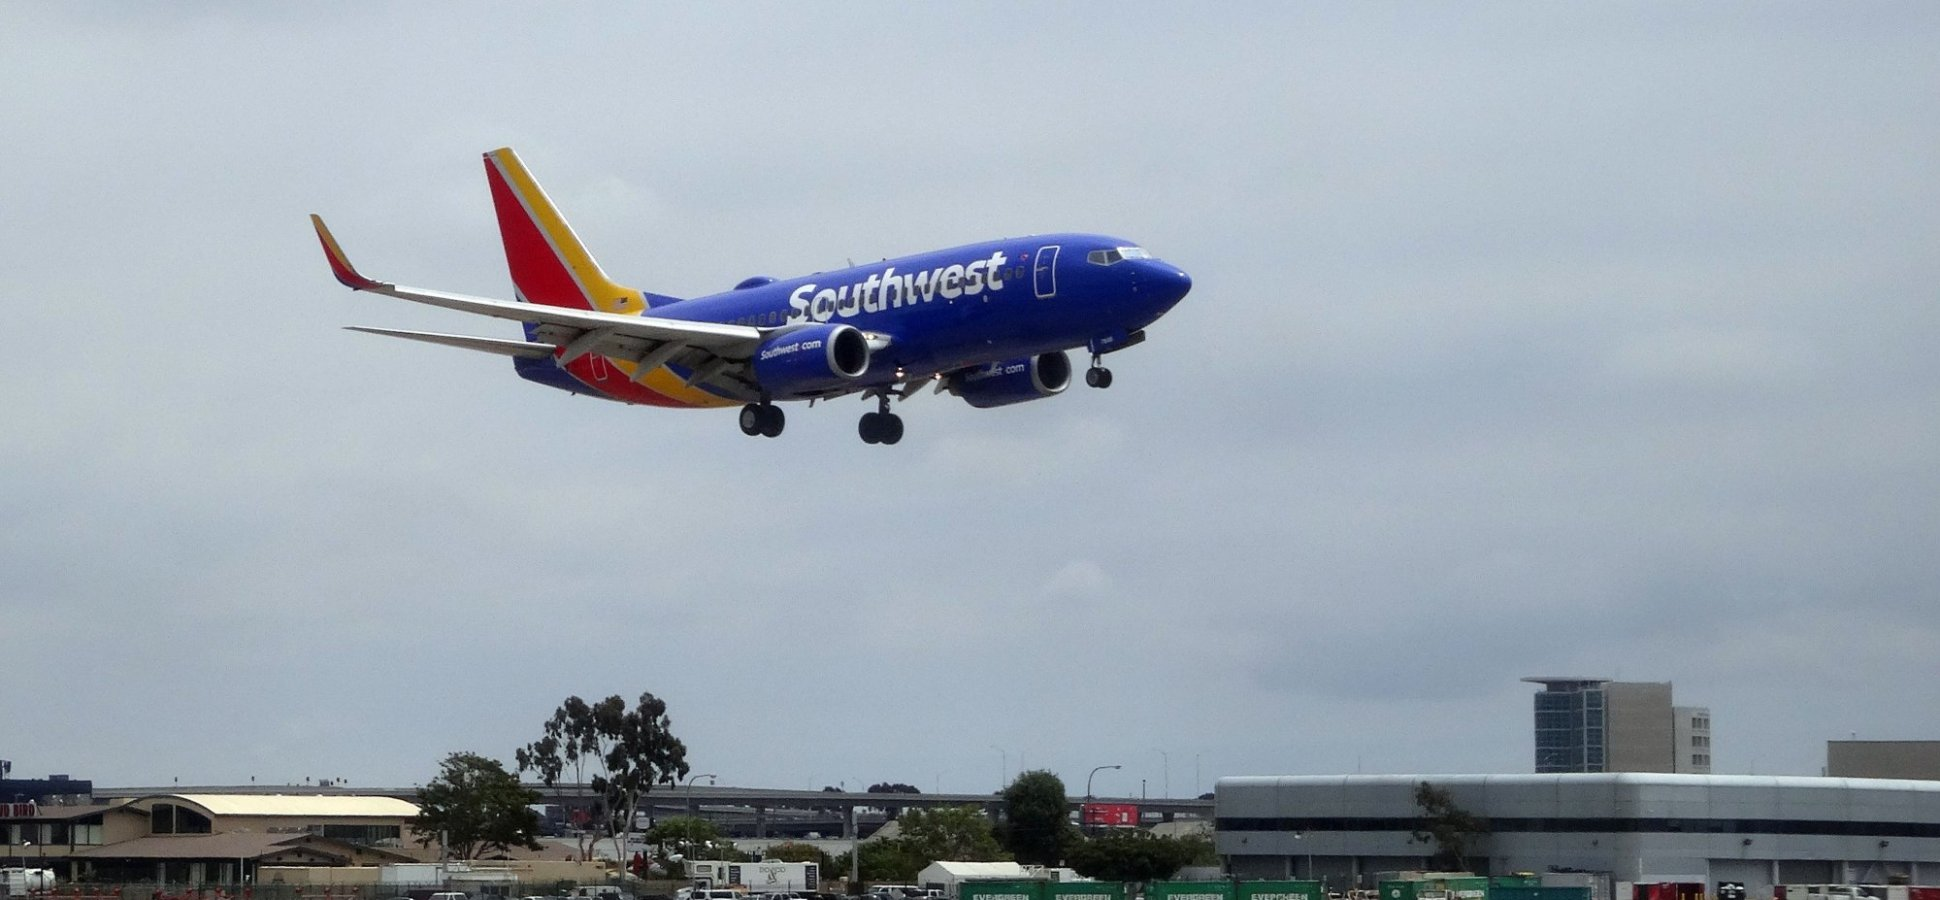 This Southwest Airlines Passenger Allegedly Did Something Really Bad. Now He's Getting Some Very Bad News